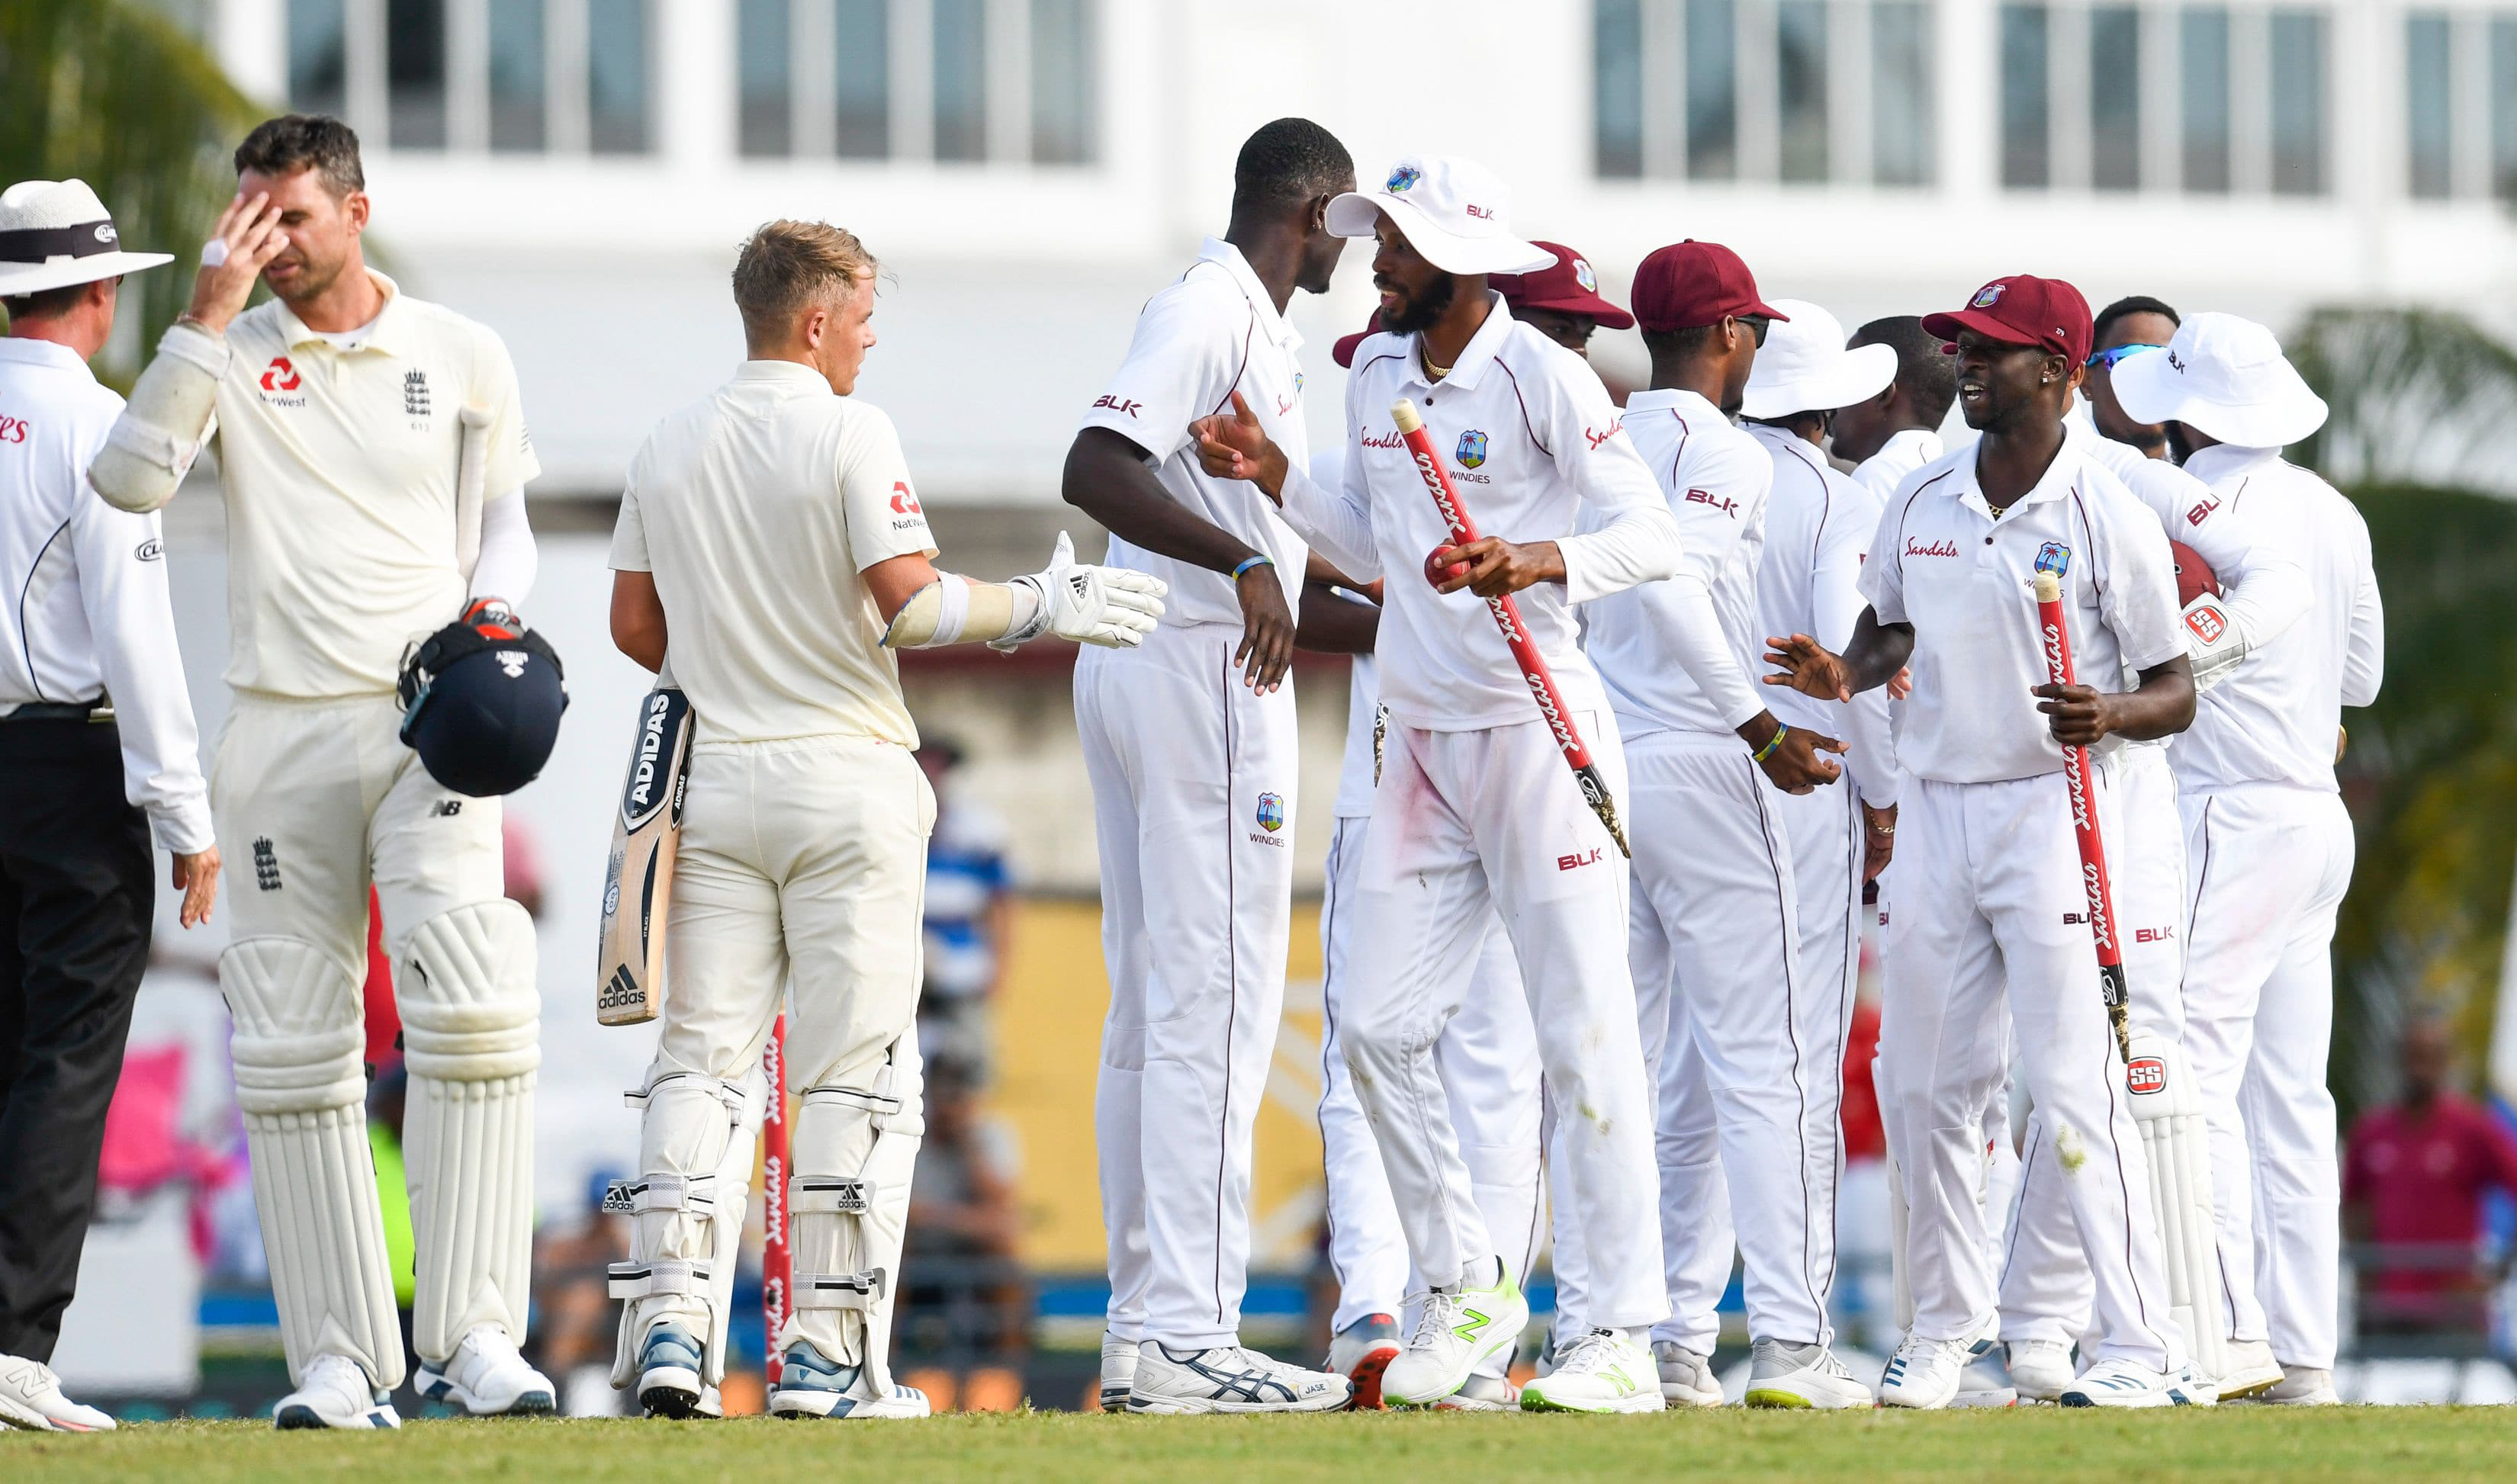 West Indies vs England - First Test in Bridgetown